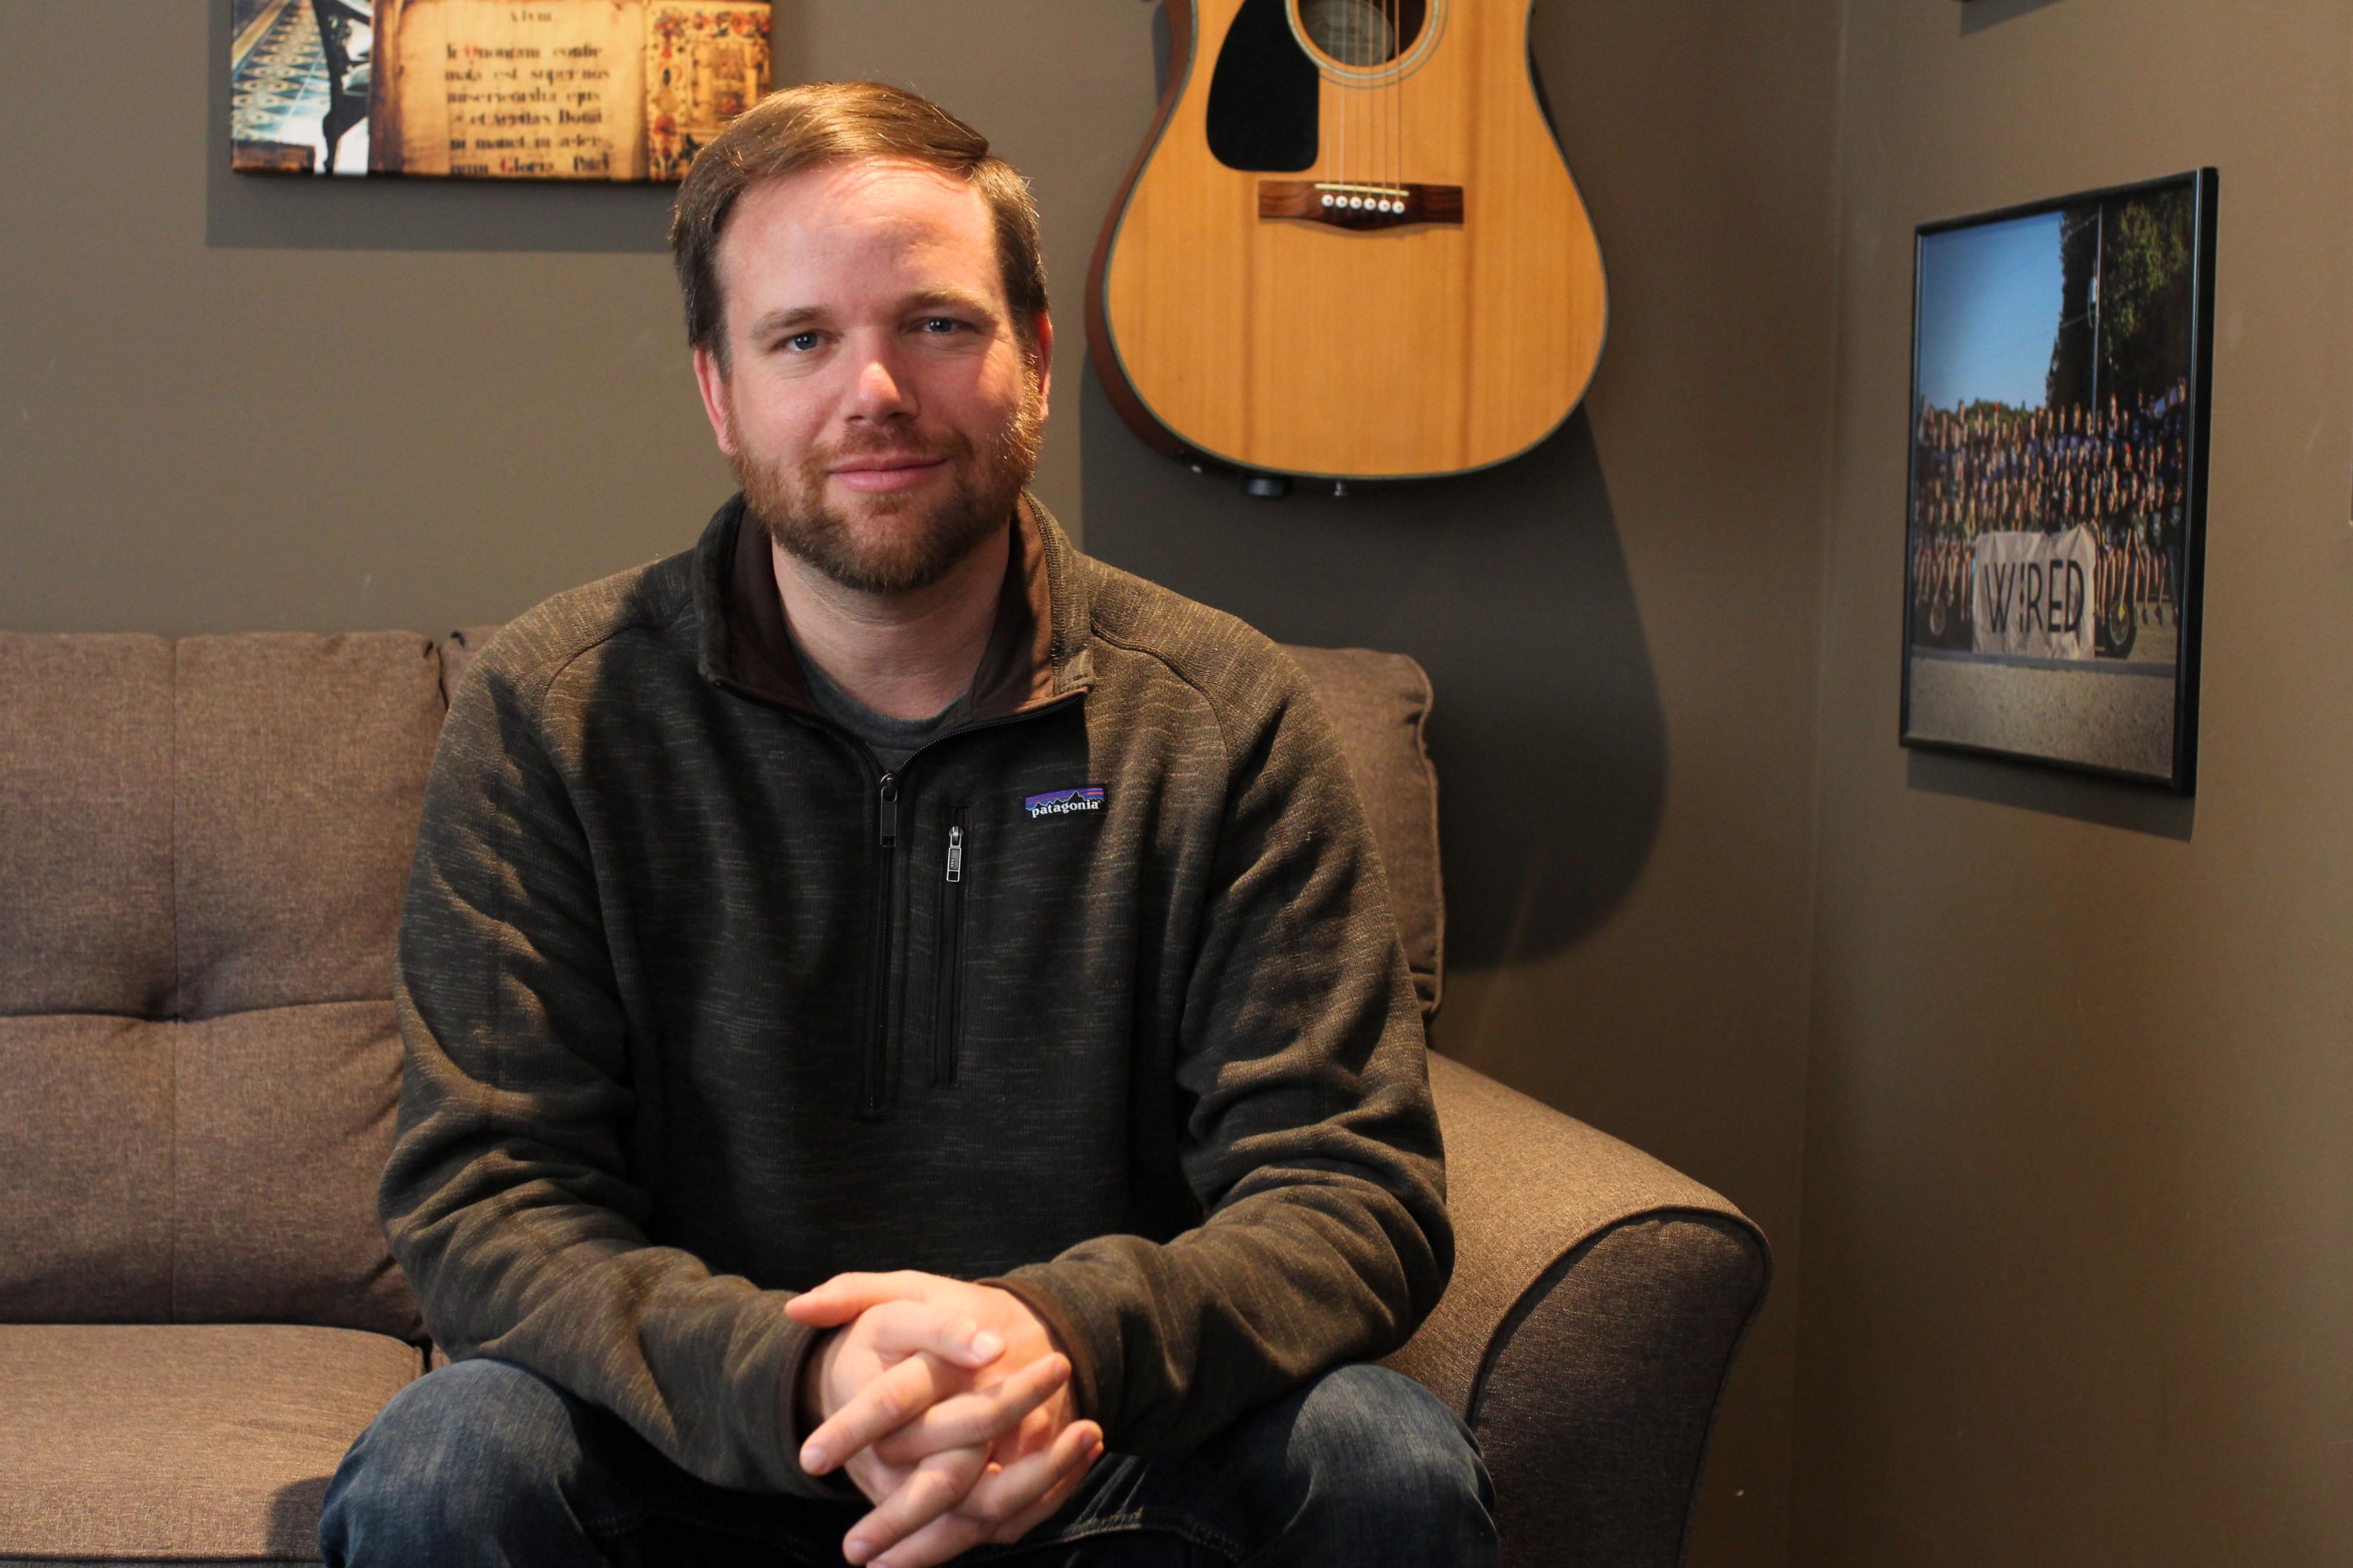 Dave De Smit - Director of Student Ministries & Worship Arts